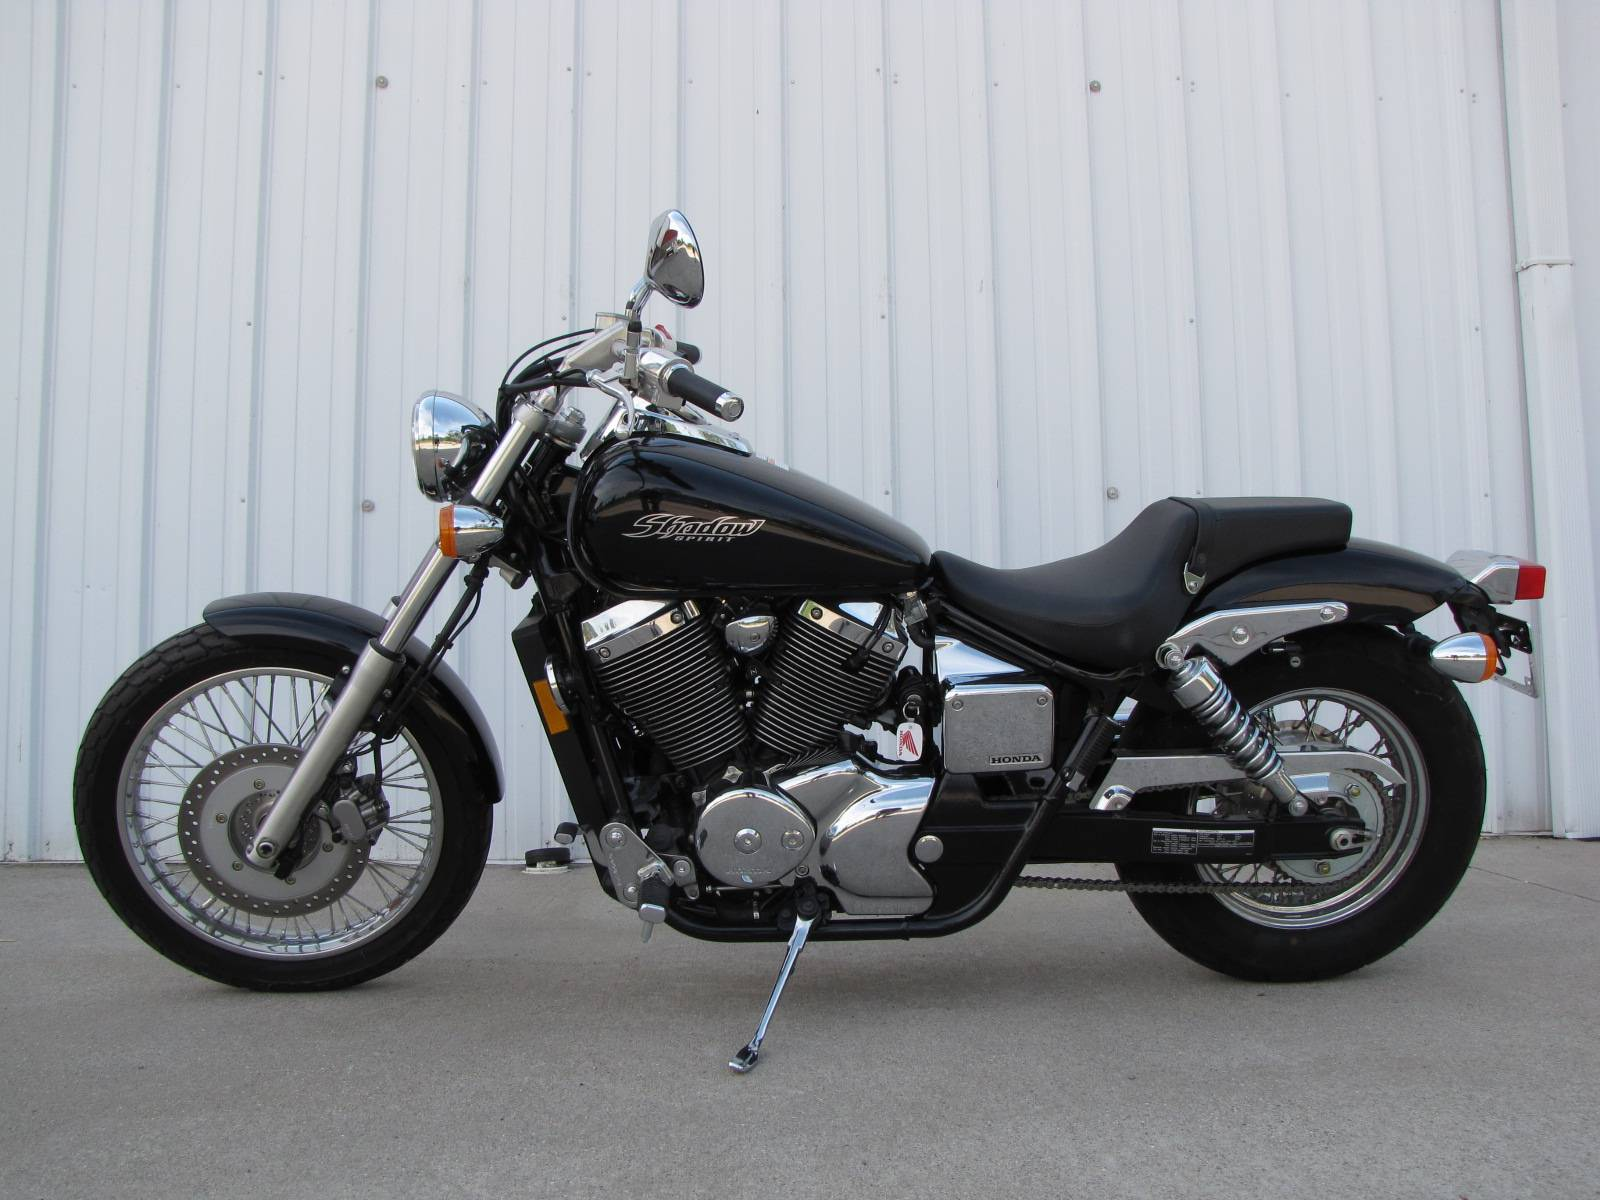 Used 2007 Honda Shadow Spirit 750 C2 Motorcycles In Ottawa Oh Rh  Hondaofottawa Net 2007 Honda Spirit 750 Specs 06 Honda Shadow Spirit 750